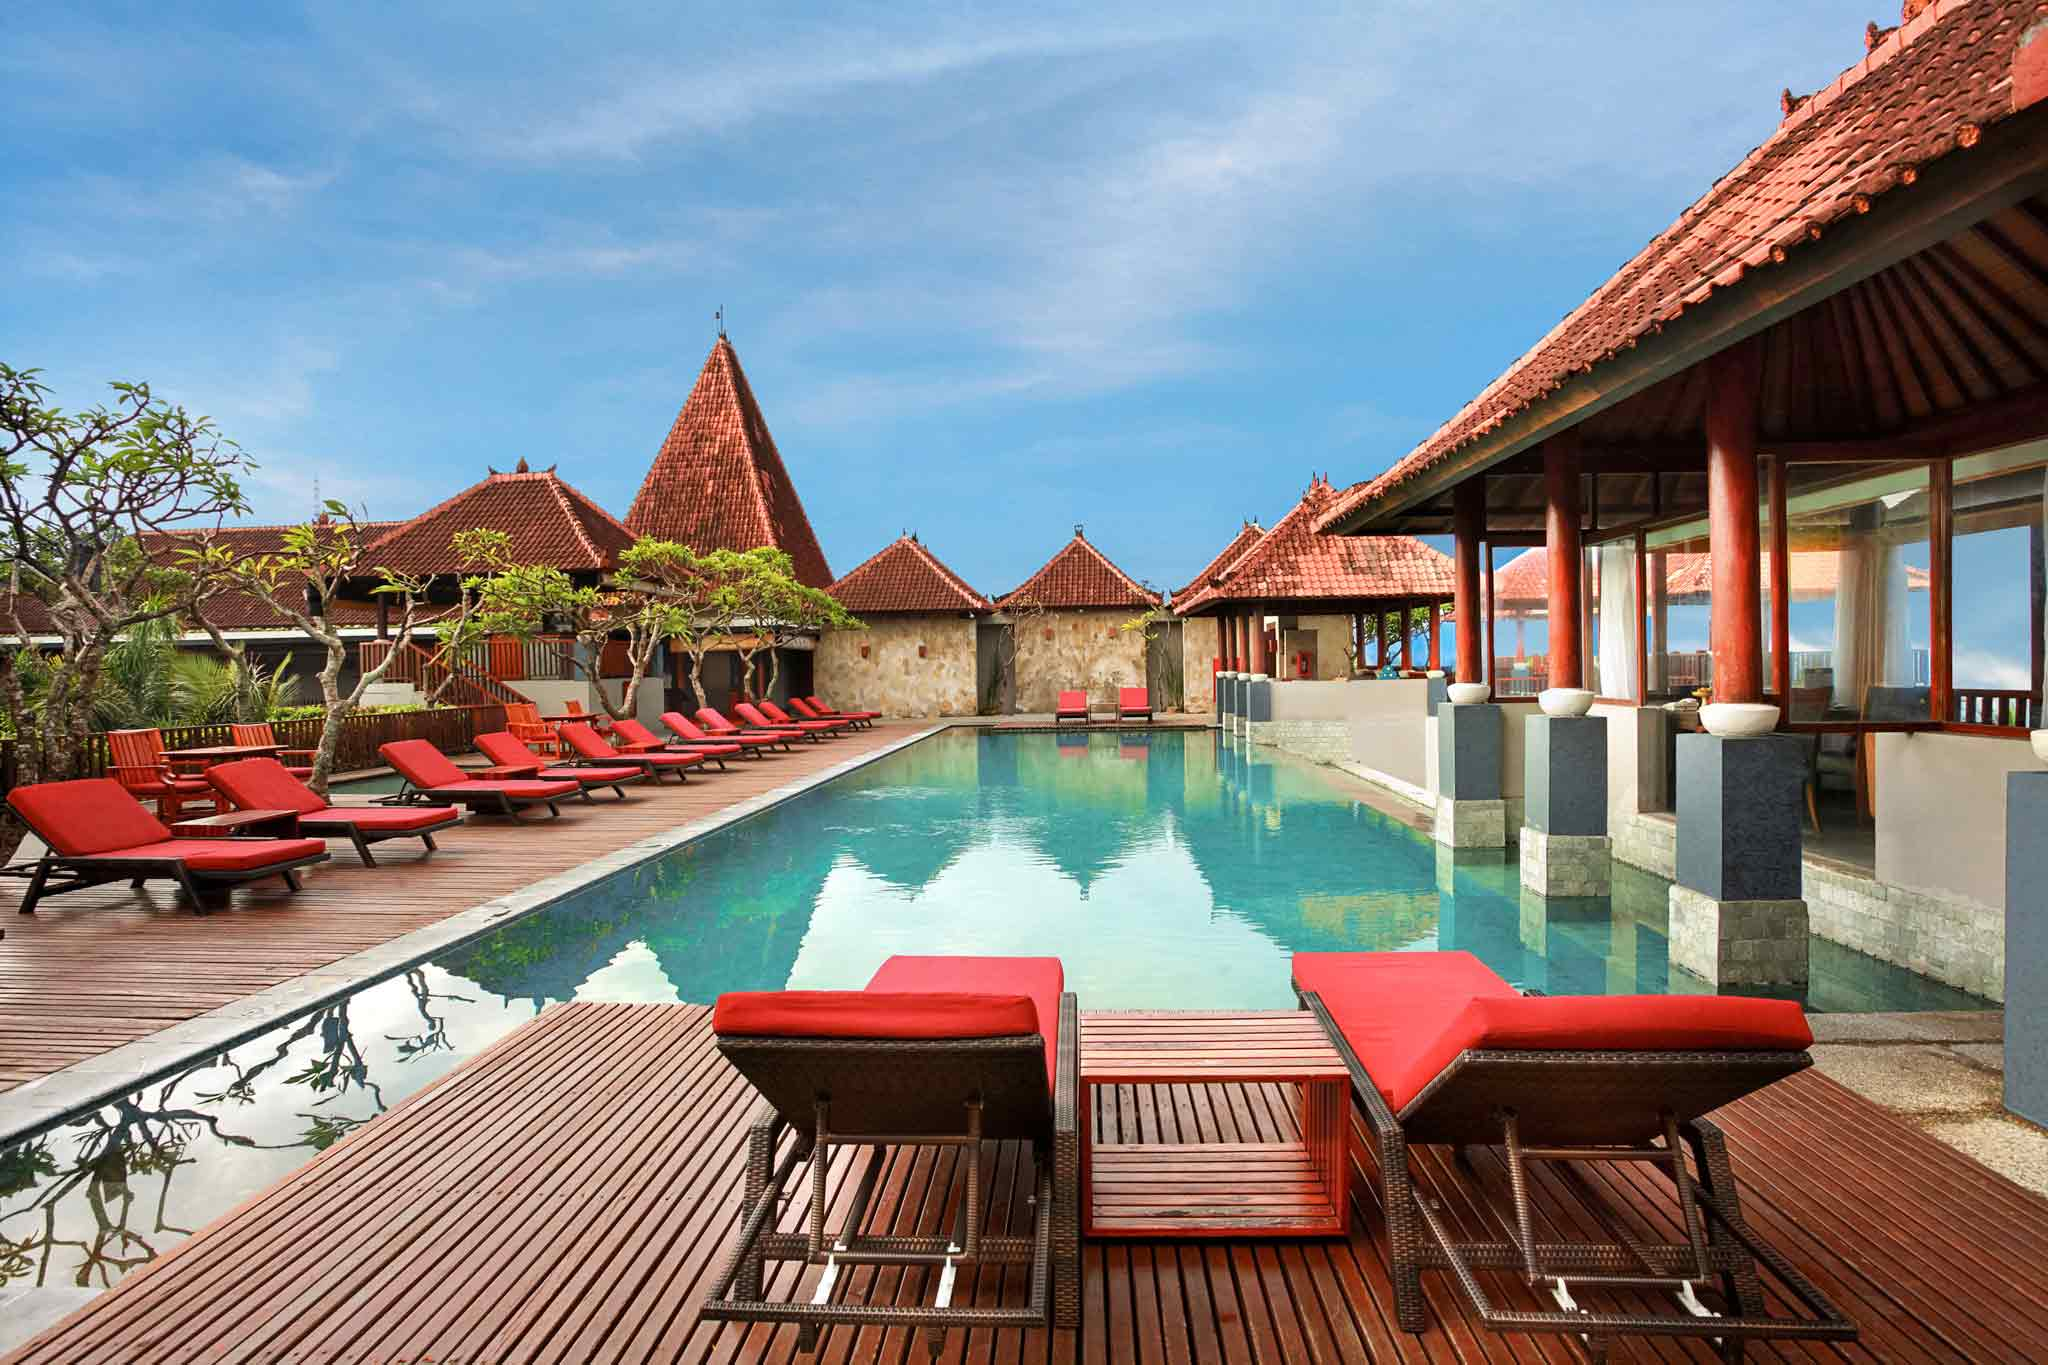 Mercure Kuta Bali Relaxation centre